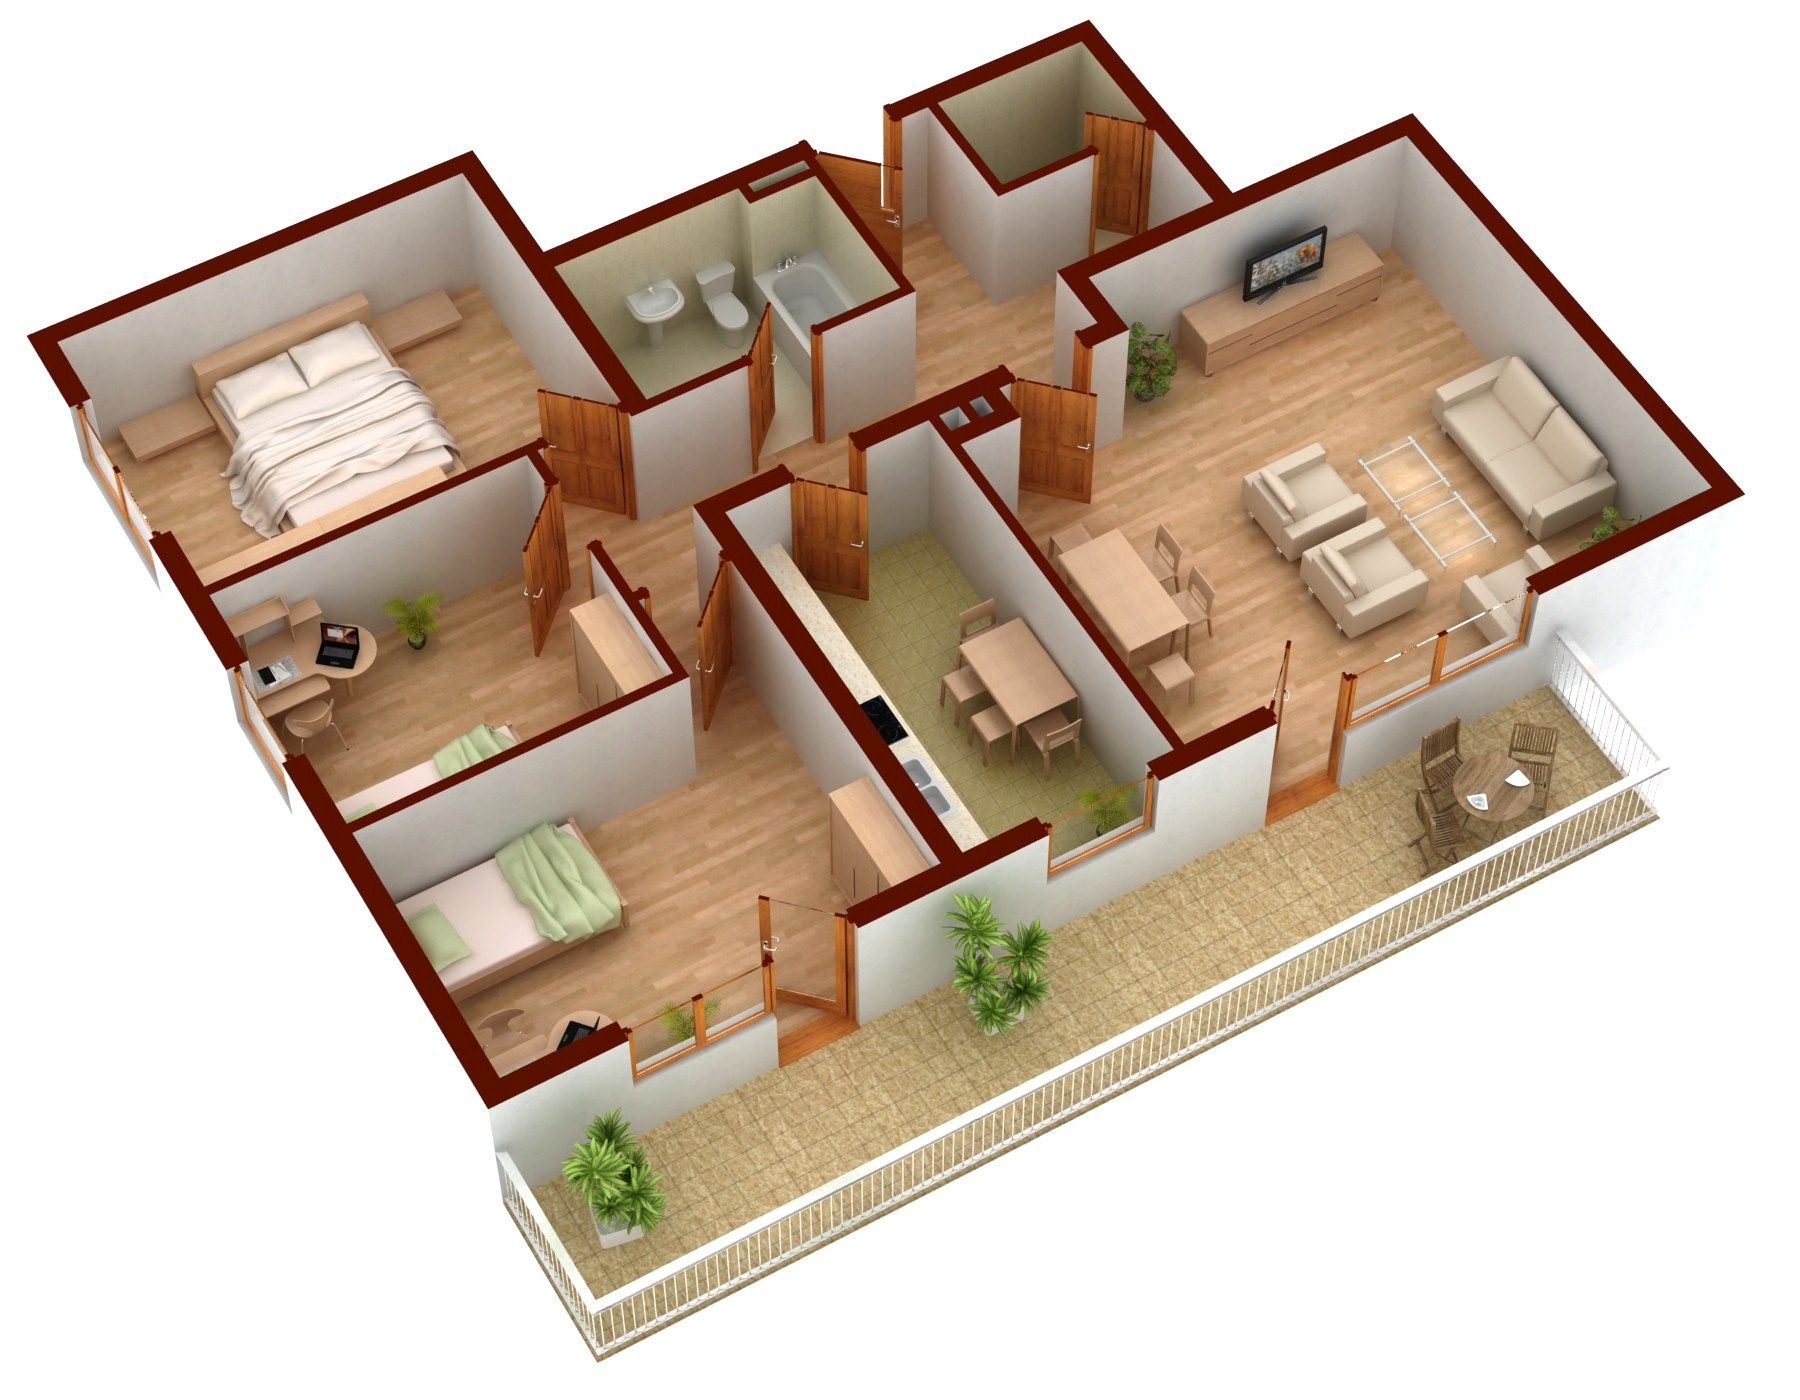 Small House Design With Floor Plan - https://delicious.com/anggarksa ...